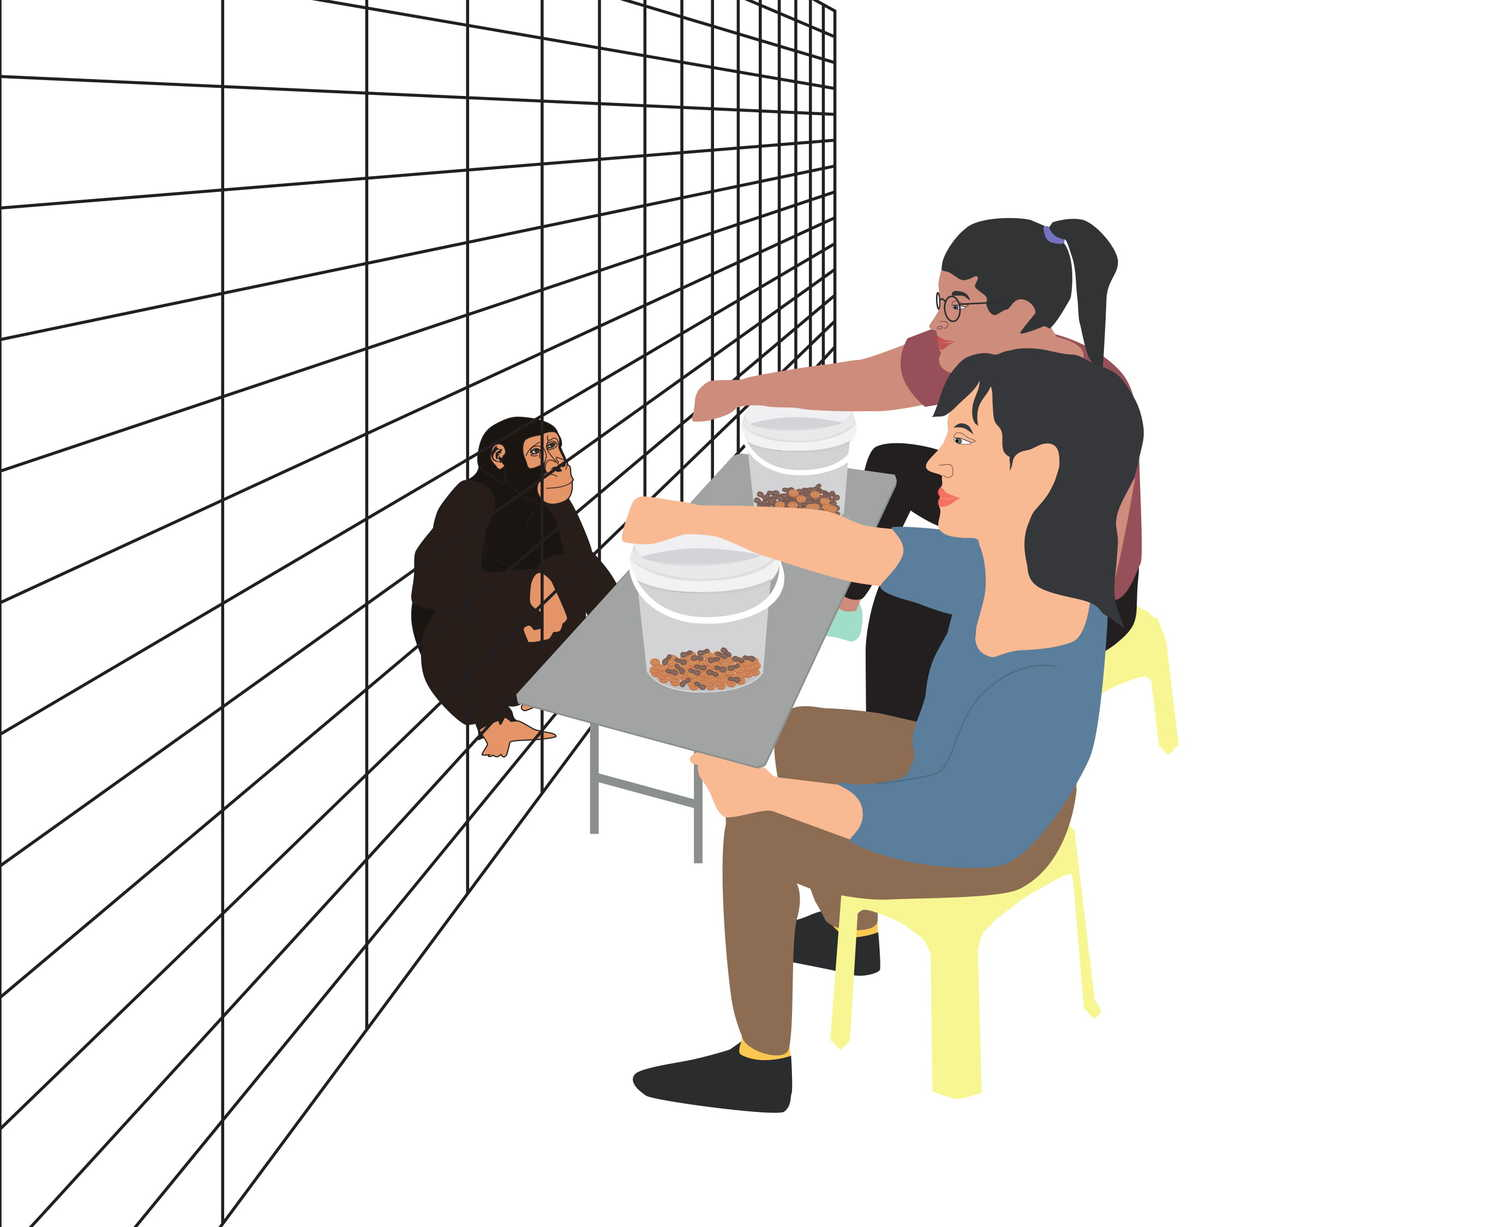 Experimental setup: Researchers gave chimpanzees the choice between two feed mixtures they wanted to taste.